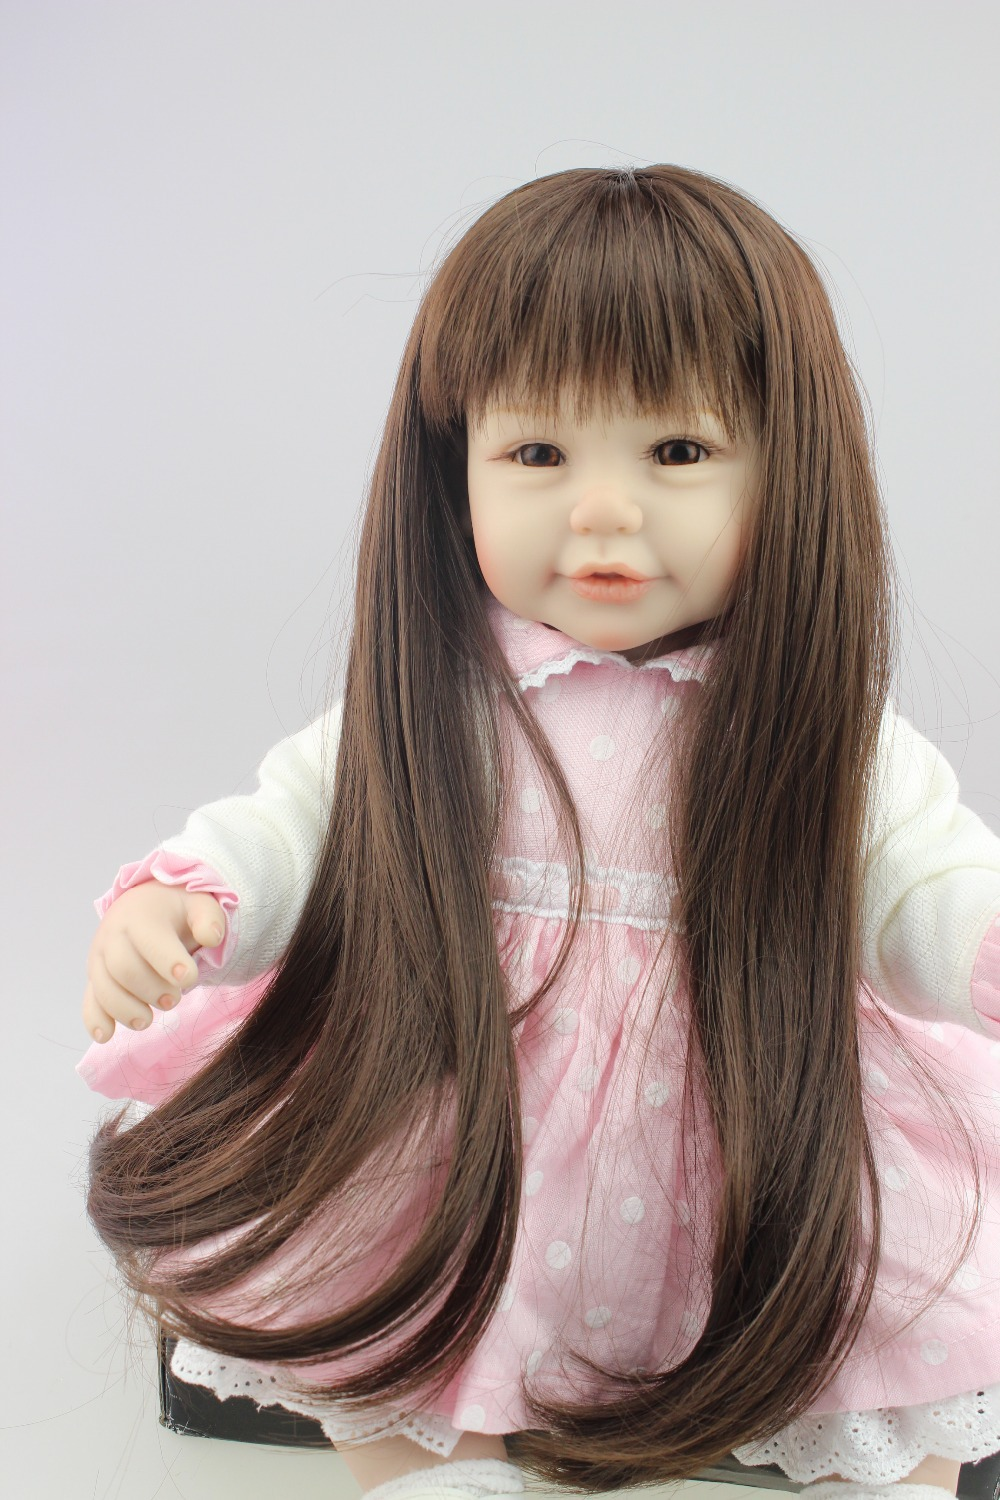 Aliexpress.com : Buy 2015 NEW design Reborn toddler girl doll sweet baby doll long hair pretty ...